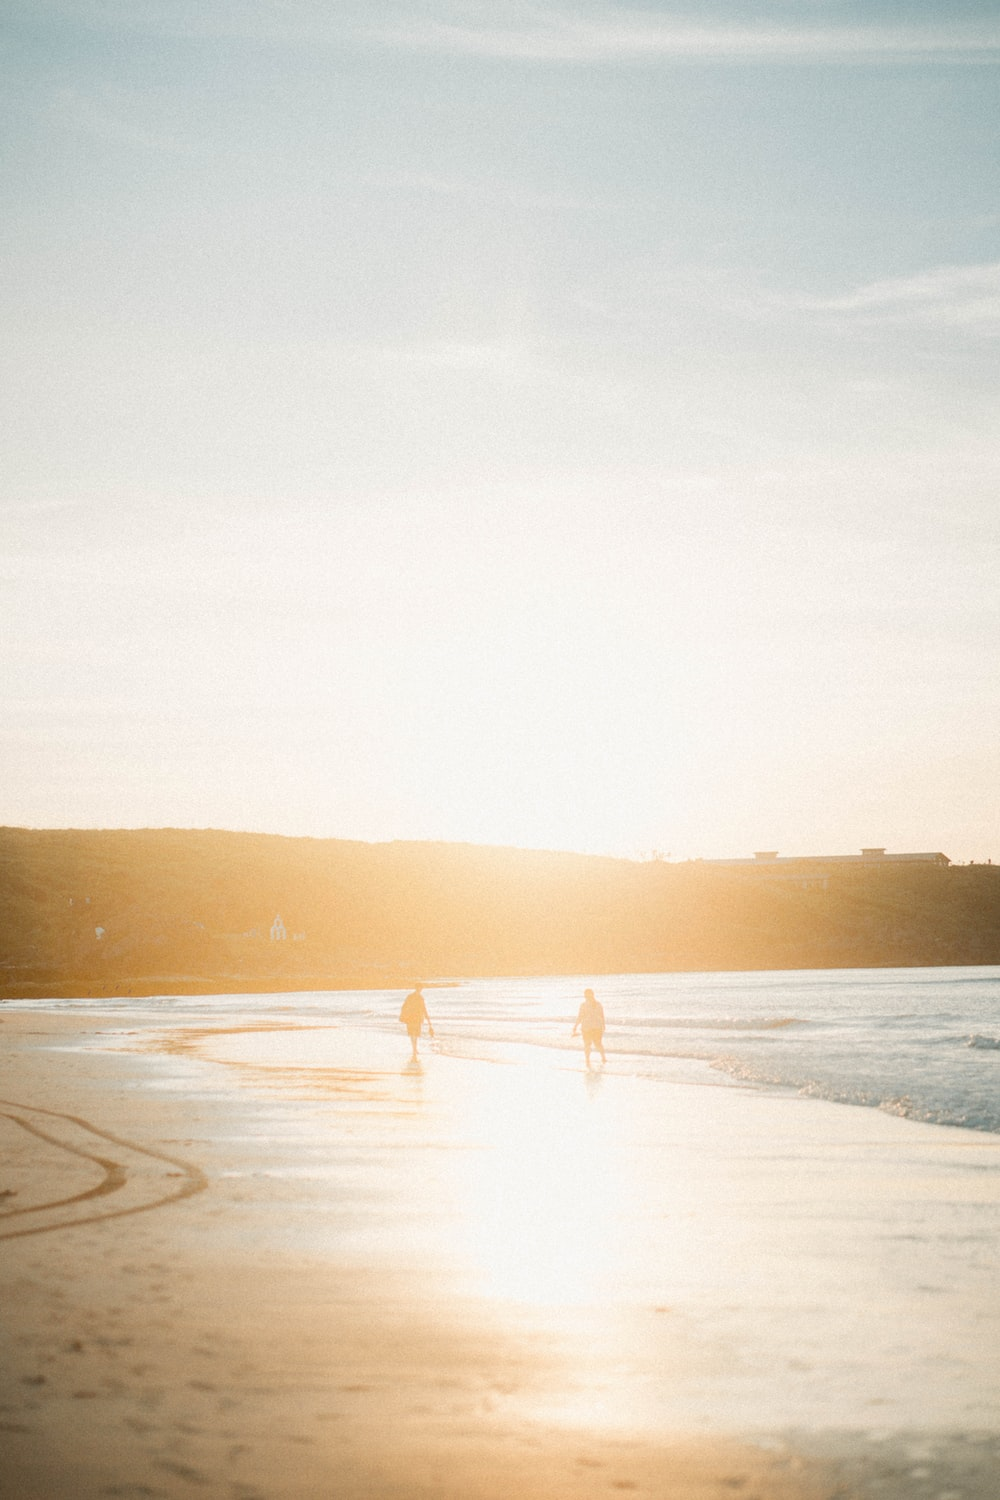 two person walking on seashore at golden hour